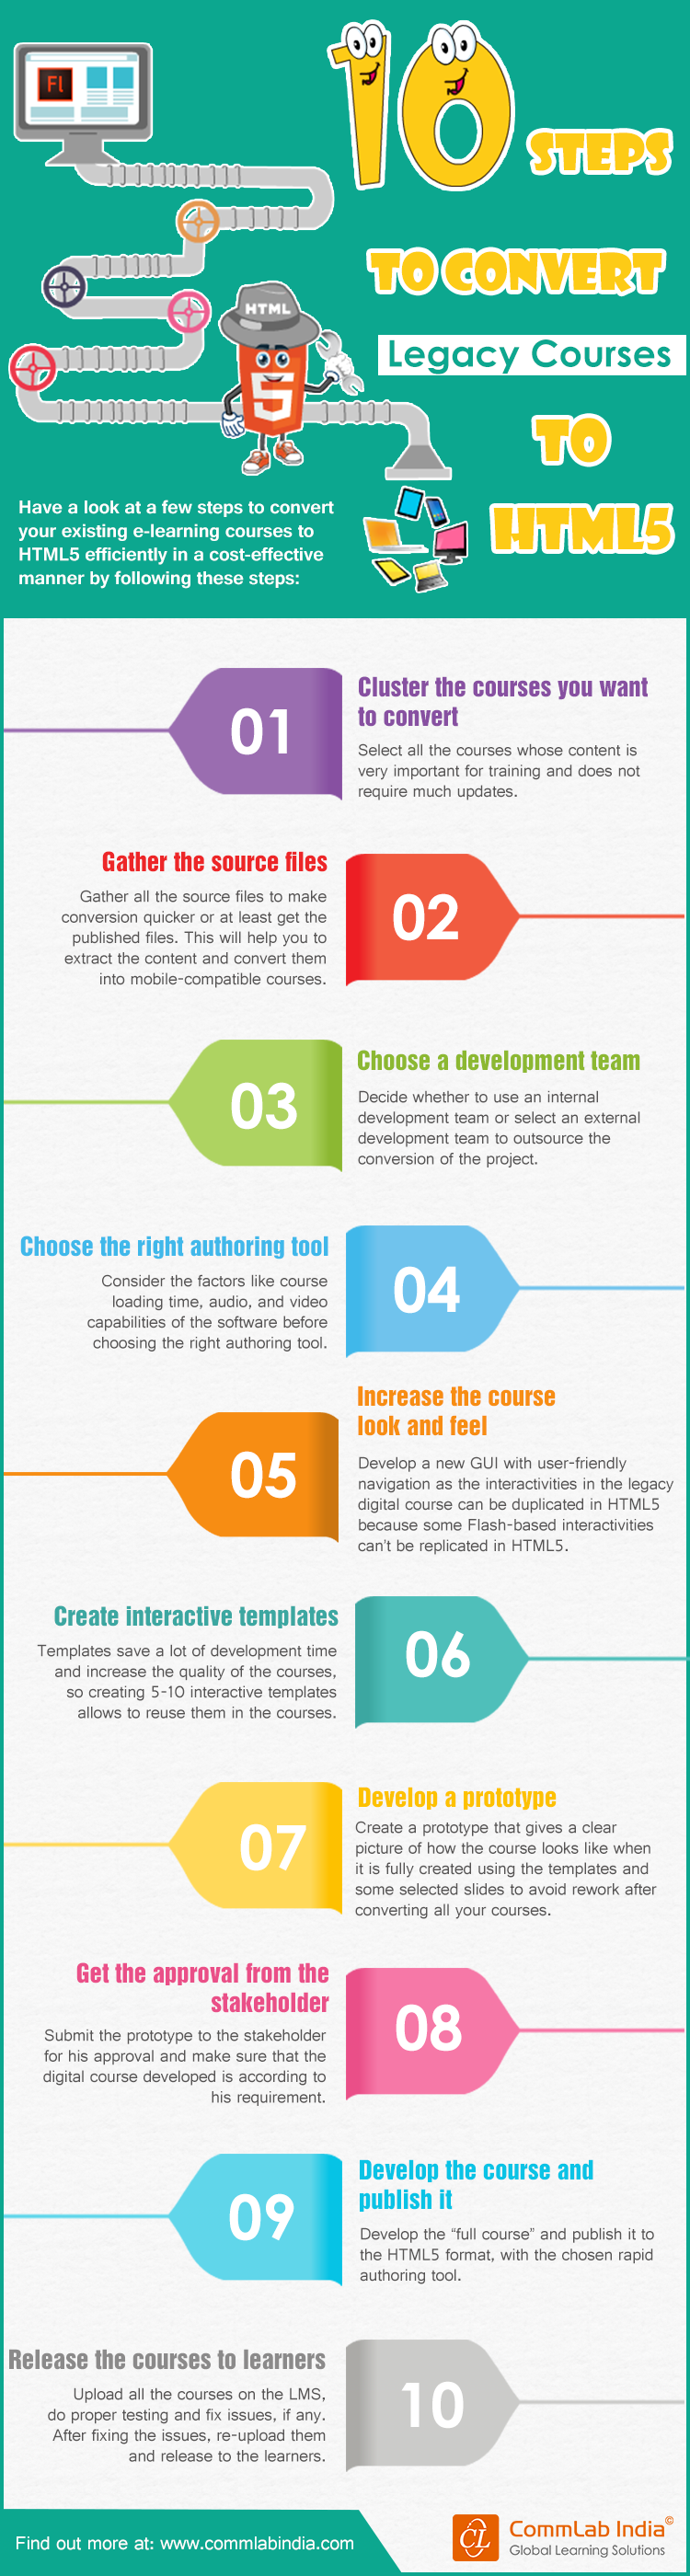 10 Steps to Convert Legacy Courses to HTML 5 [Infographic]